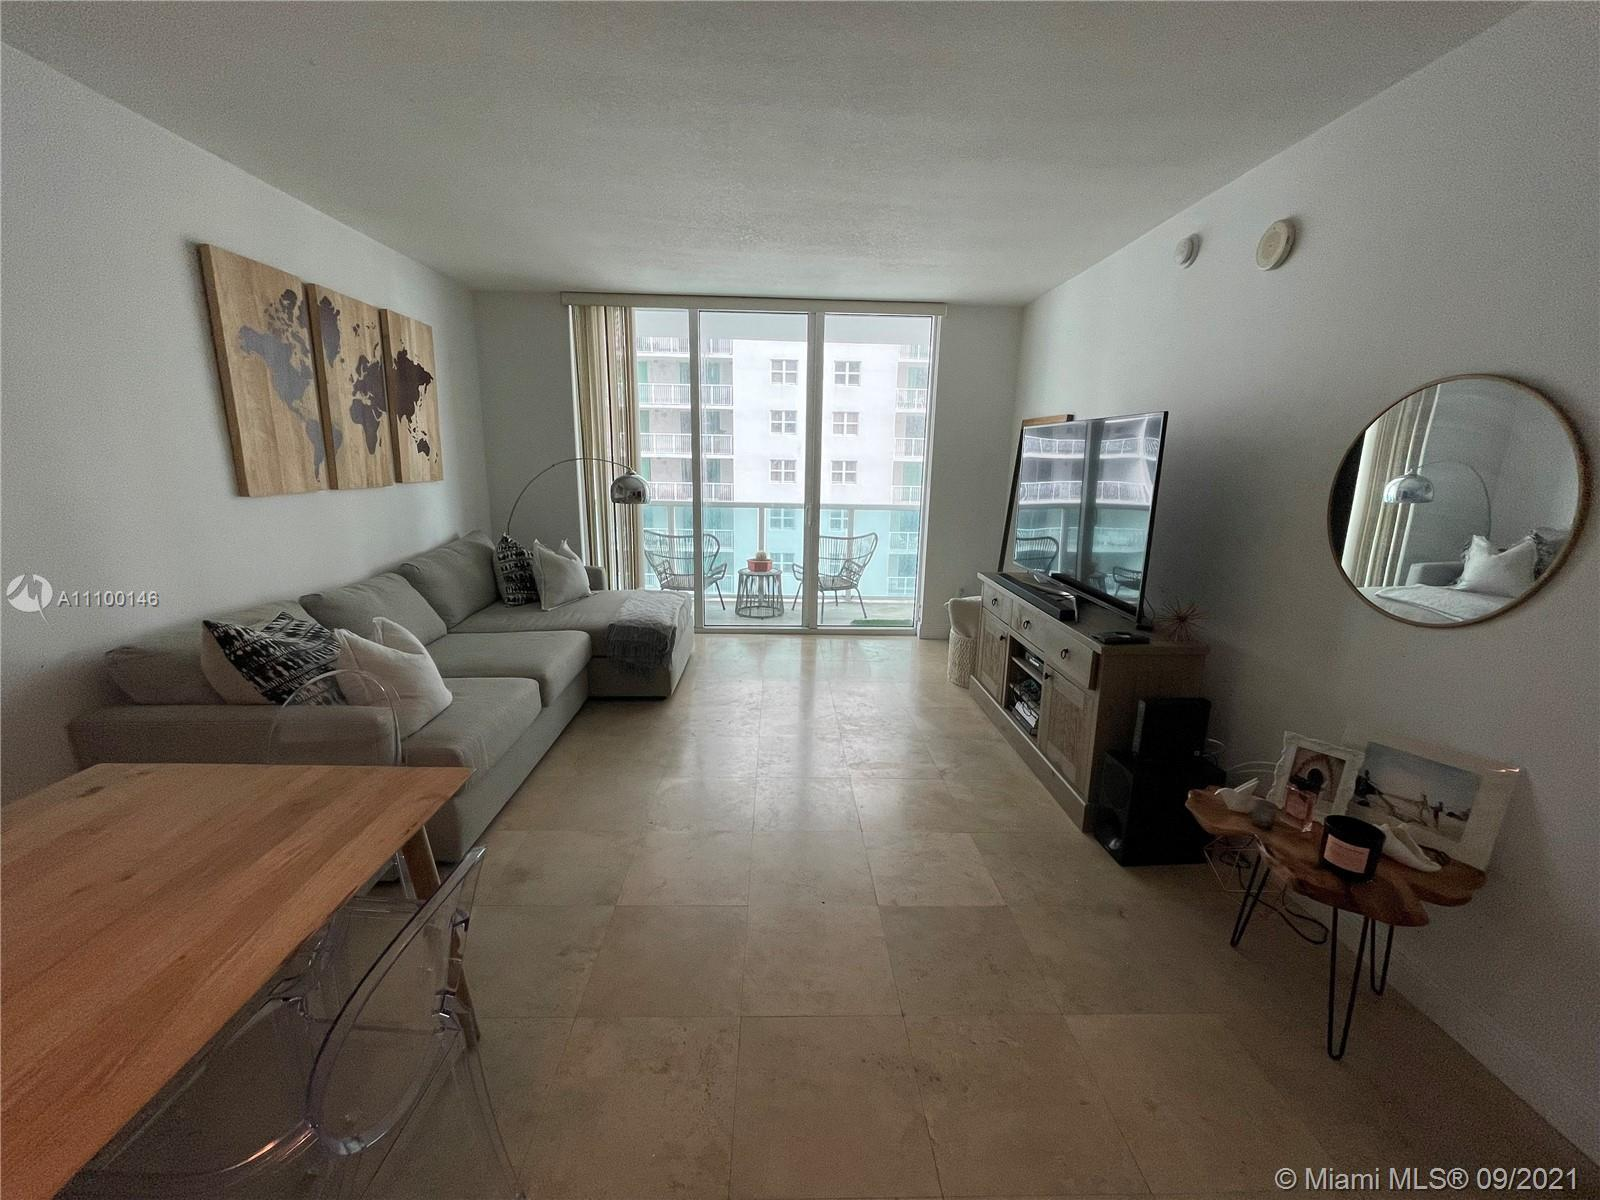 Immaculate 1/1 in the heart of Brickell with partial bay views! Boutique-style building within walki